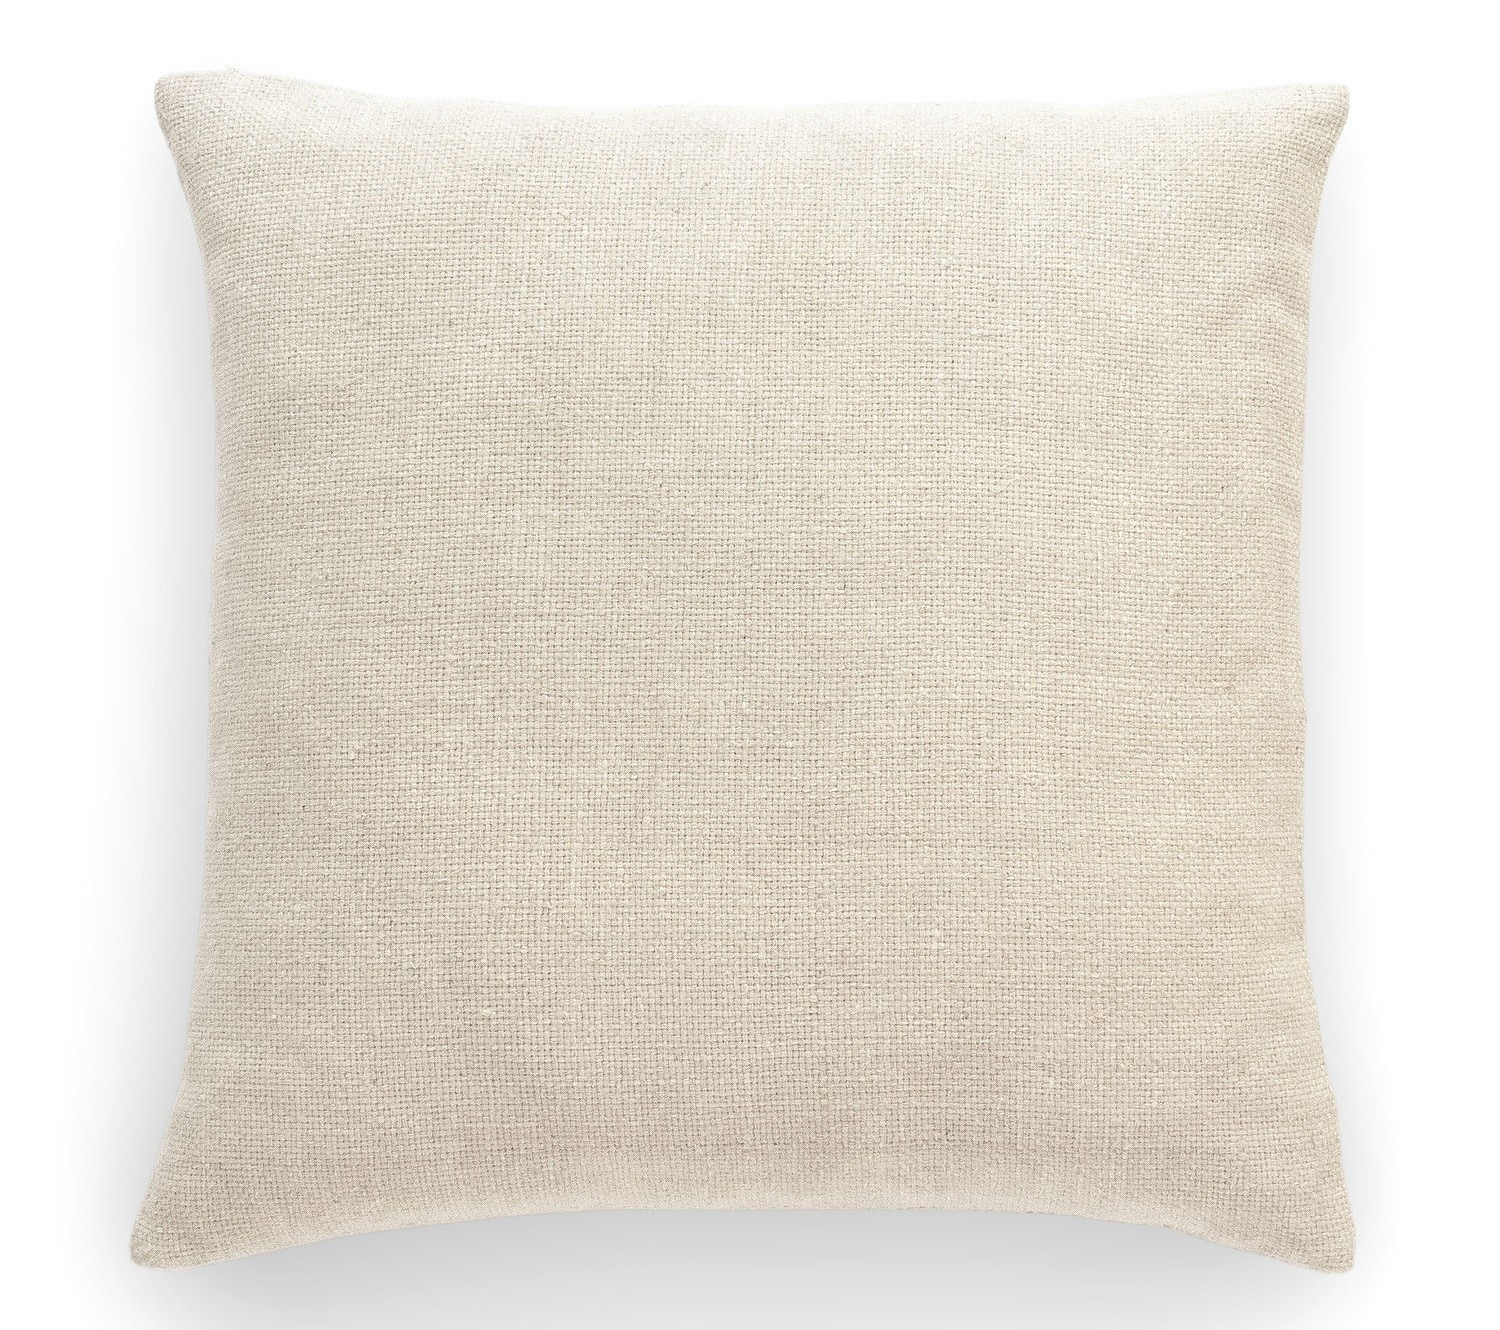 Nanimarquina Wellbeing Light Cushion (Priced Each, Sold in Sets of 3)